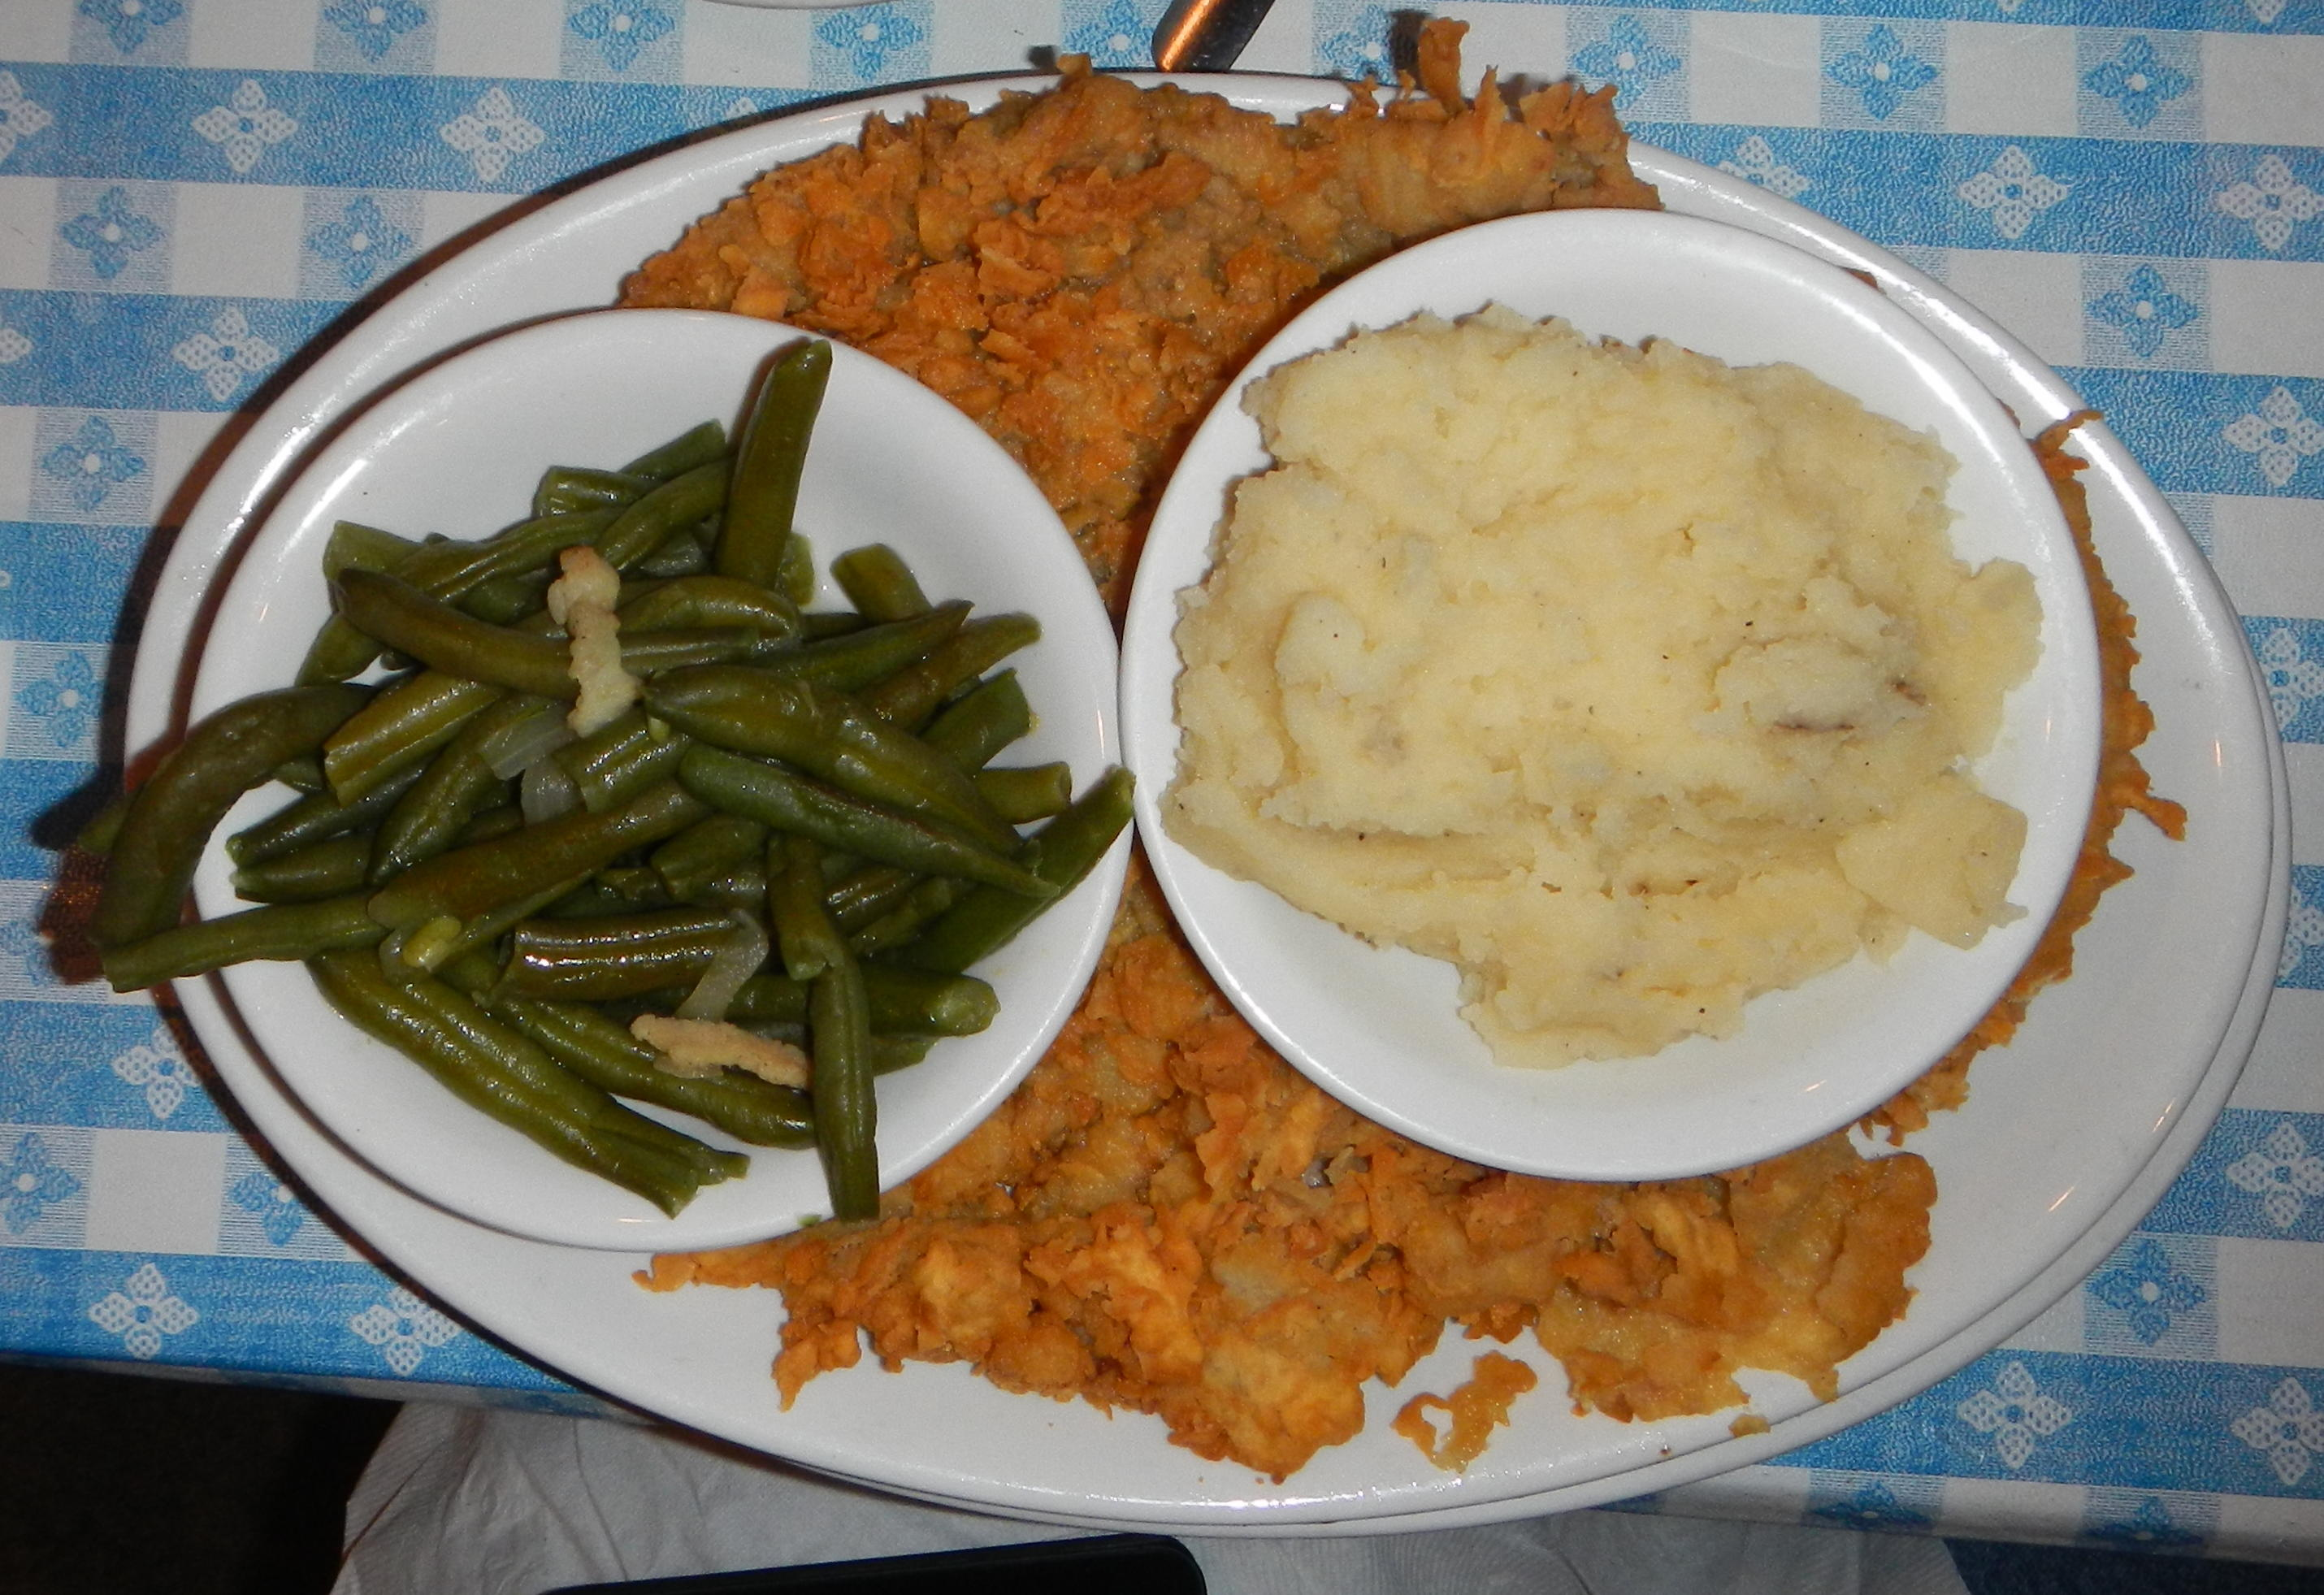 The Chicken Fried Steak at Goodson's Cafe in Tomball, TX